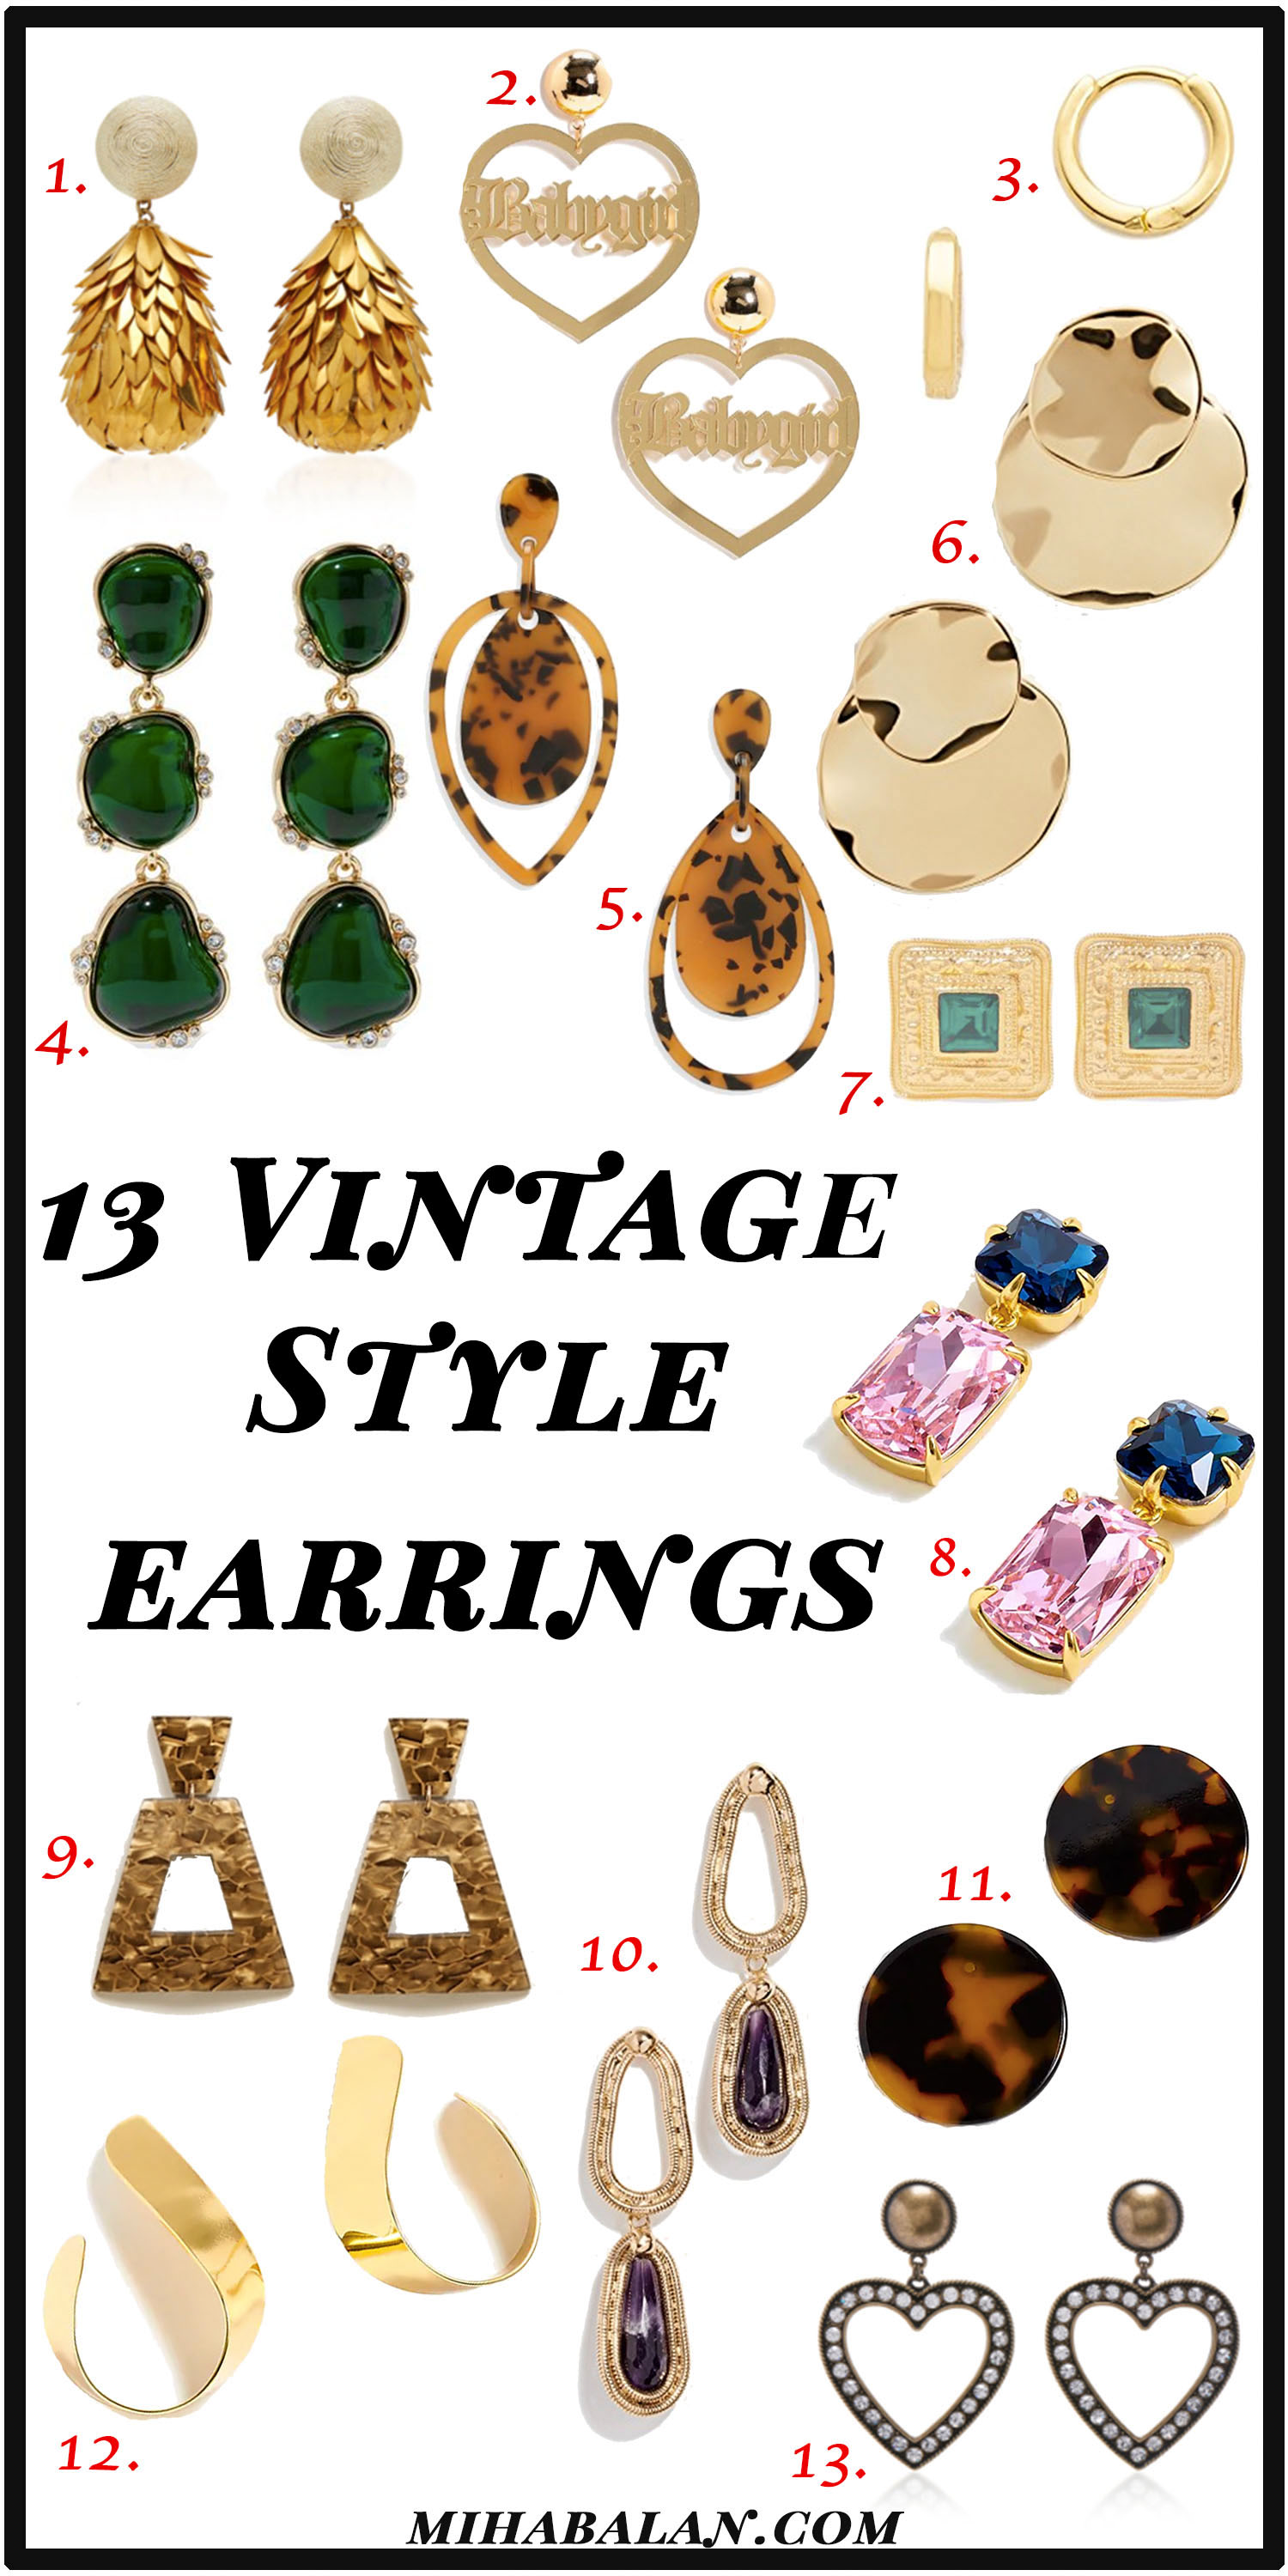 13 Statement Earrings, vintage inspired earrings, fall earrings, jewelry, jewellery, women accessories, hoops